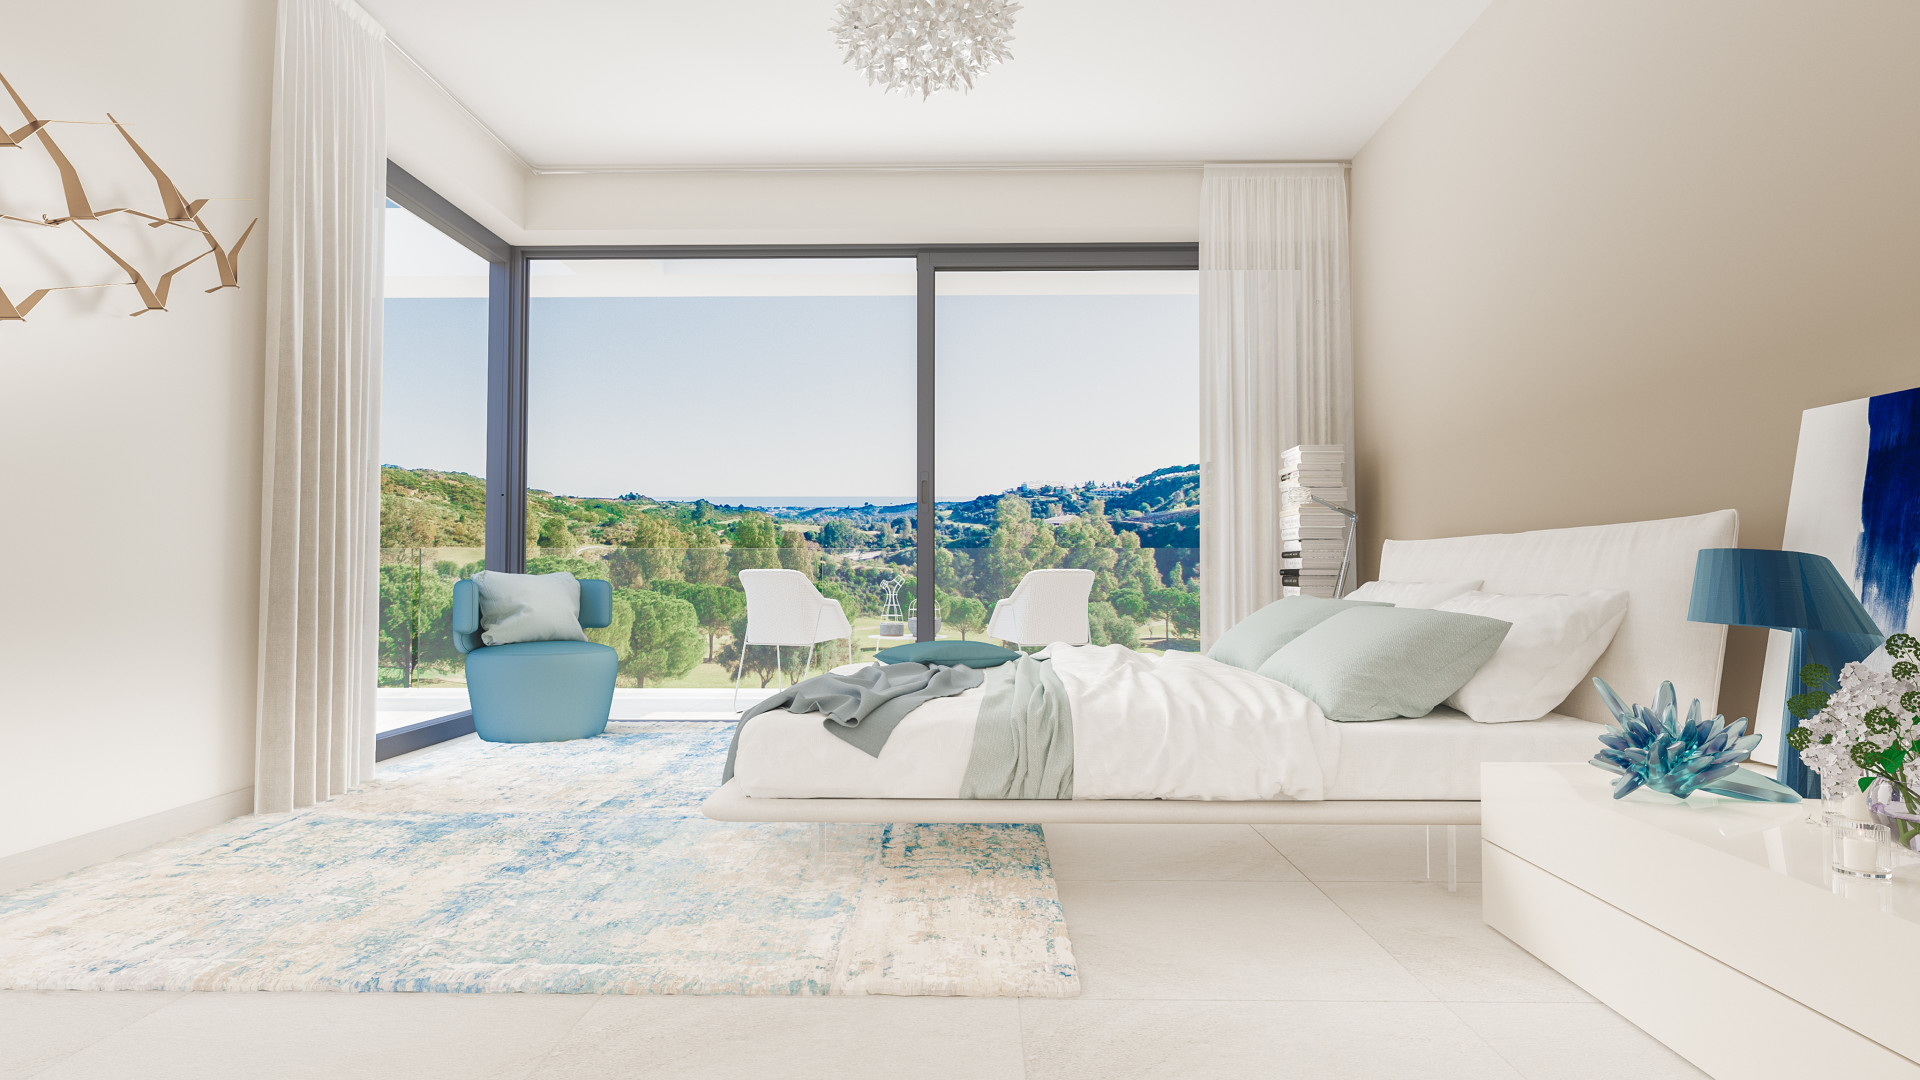 Superb contemporary apartments within golf resort in Mijas Costa